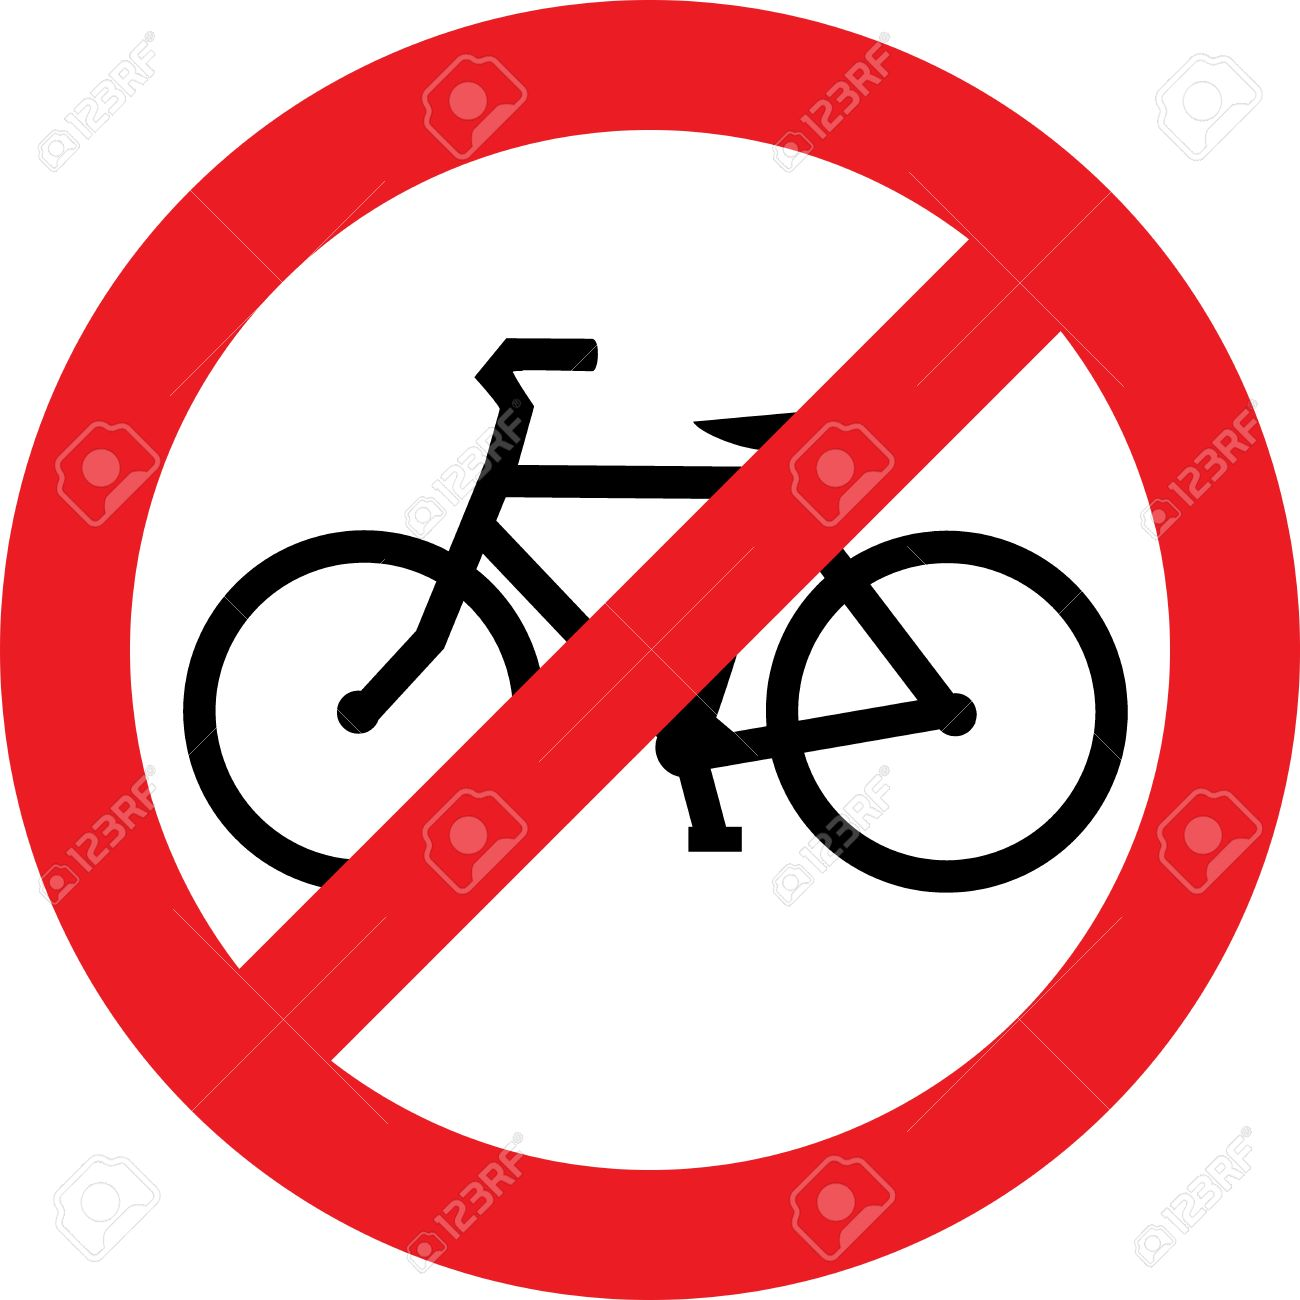 388 No Cycle Cliparts, Stock Vector And Royalty Free No Cycle.